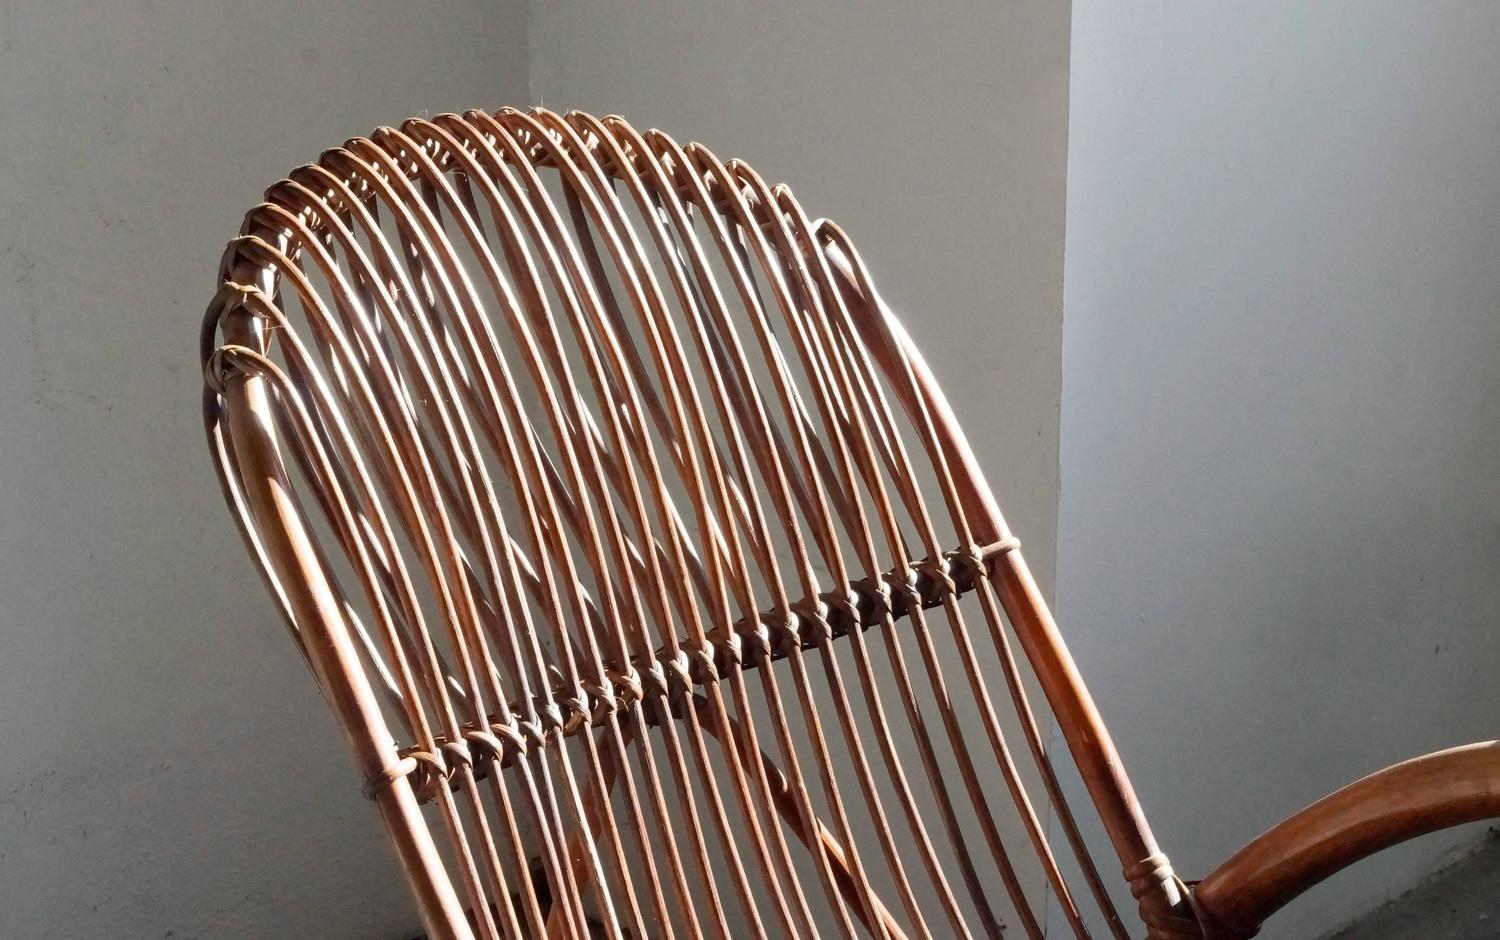 Mid Century Modern Rattan Rocking Chair By Franco Albini At 1stdibs